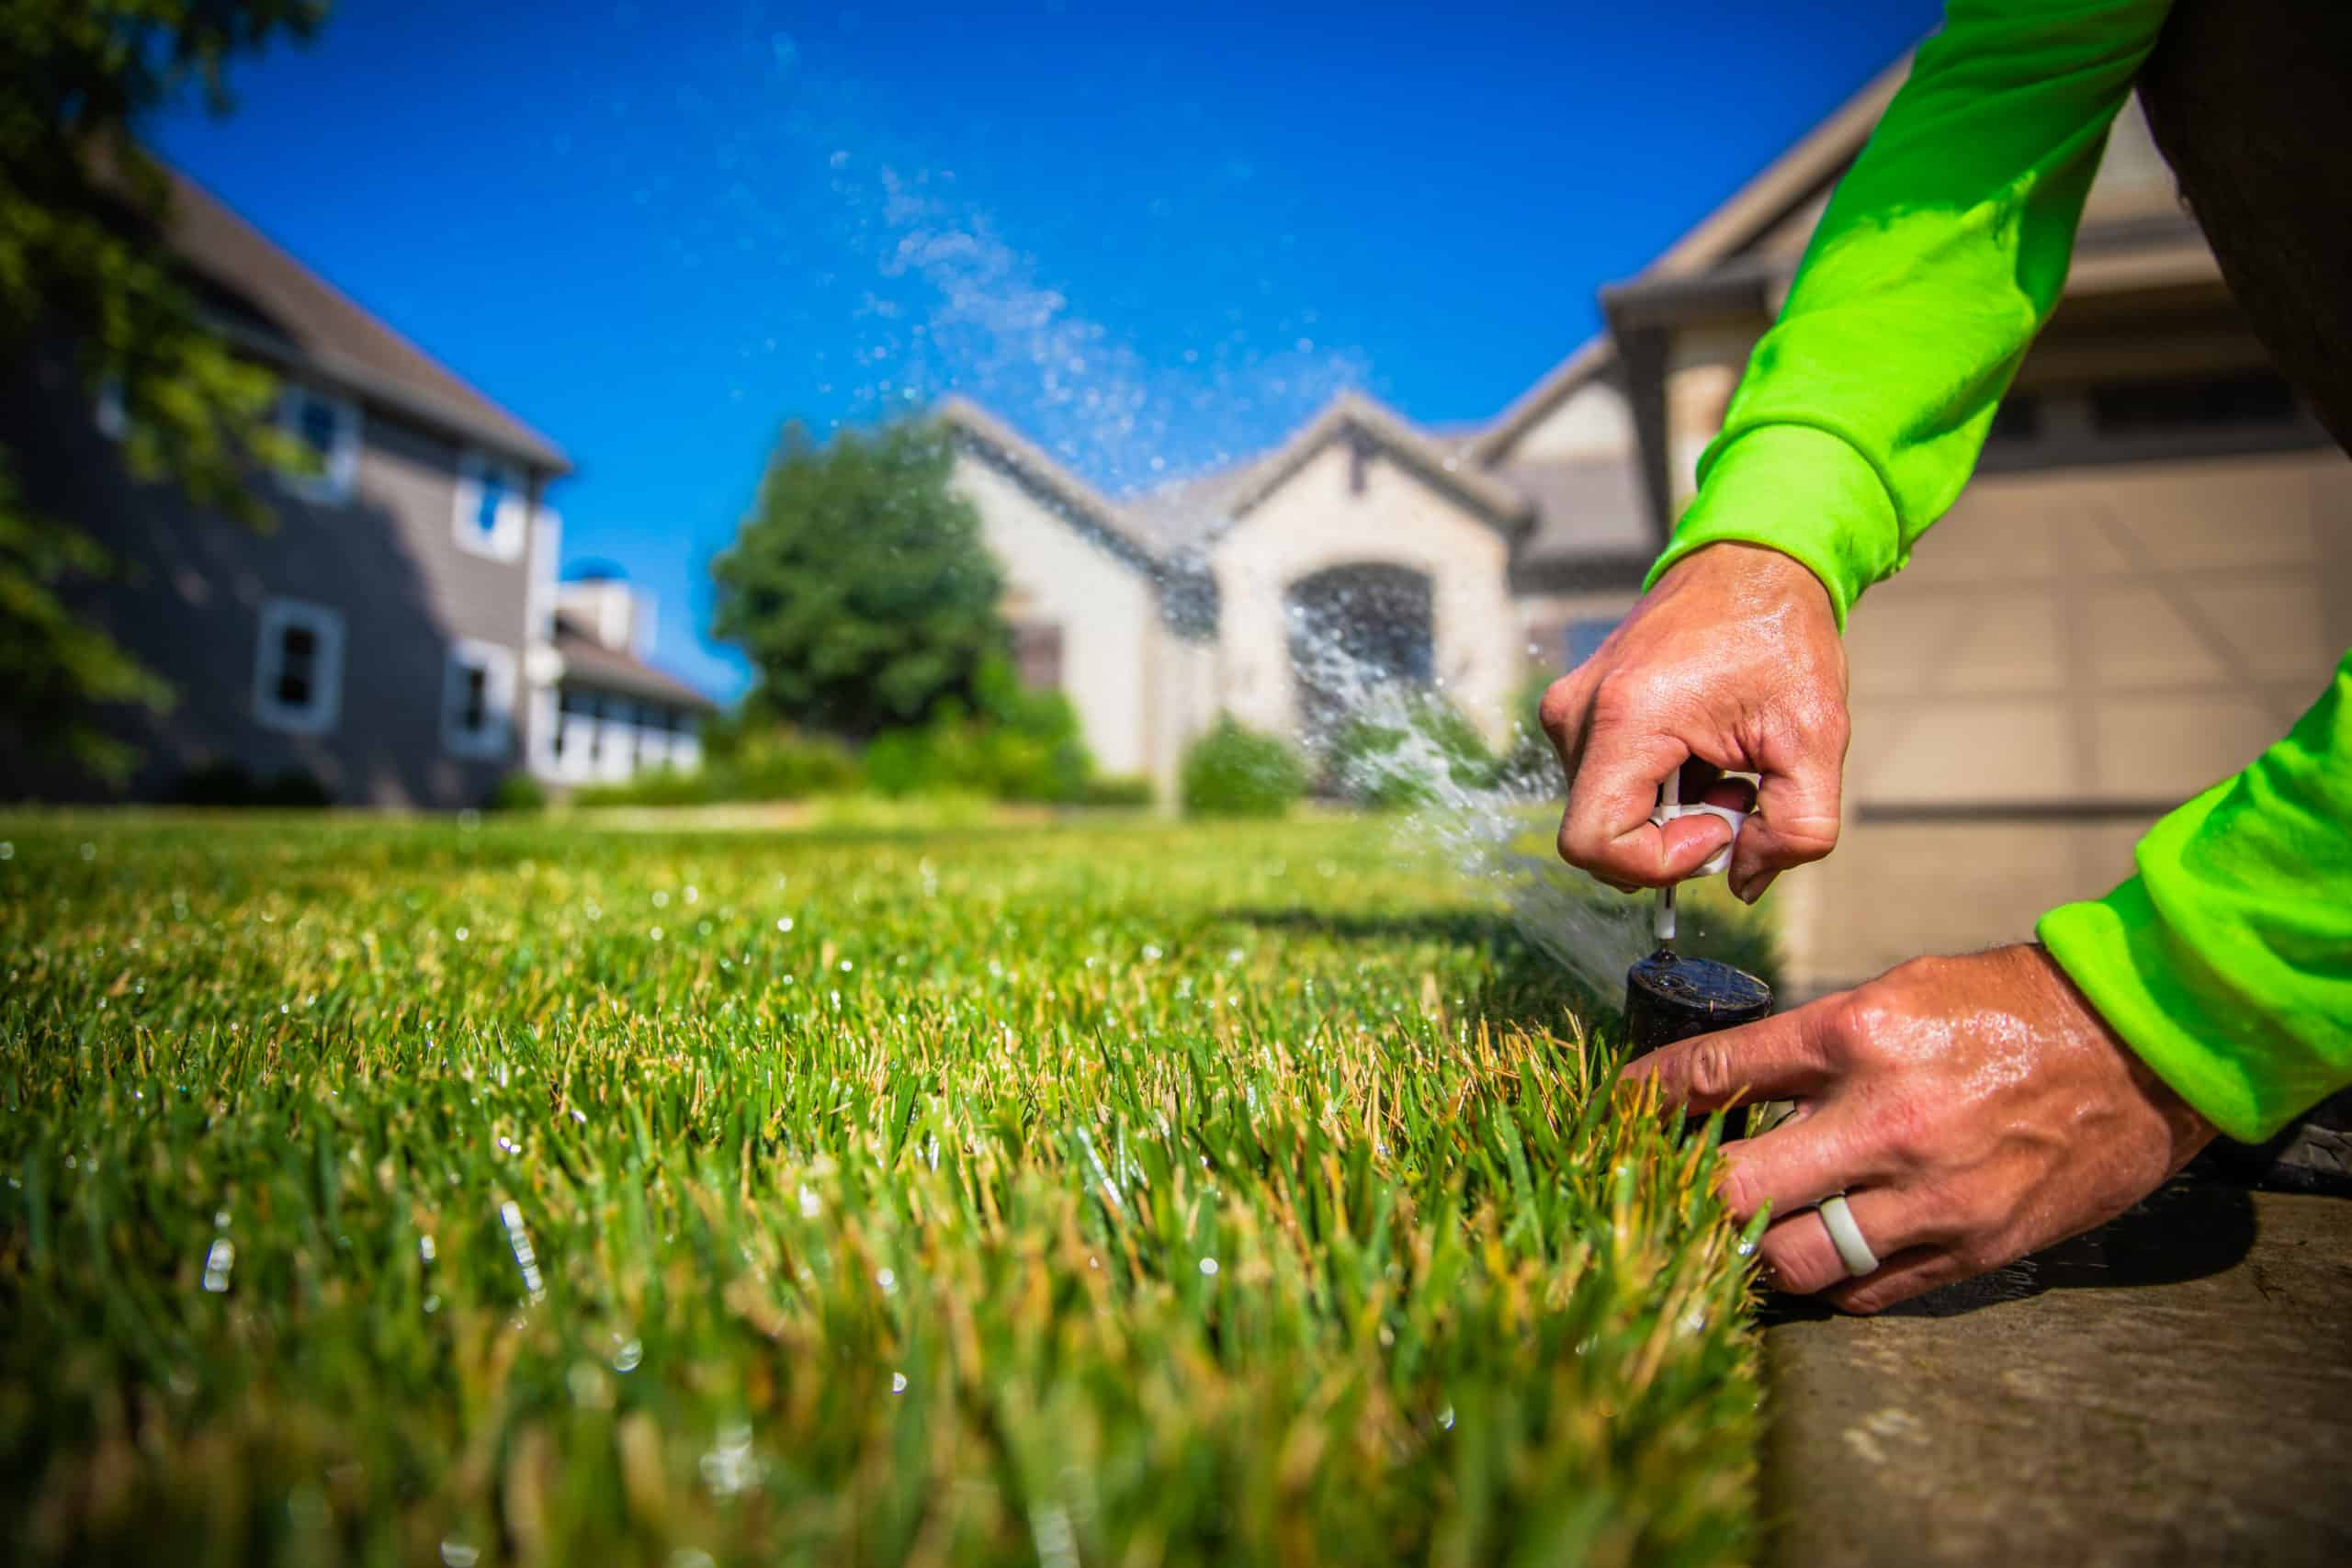 Man turning on an lawn irrigation system